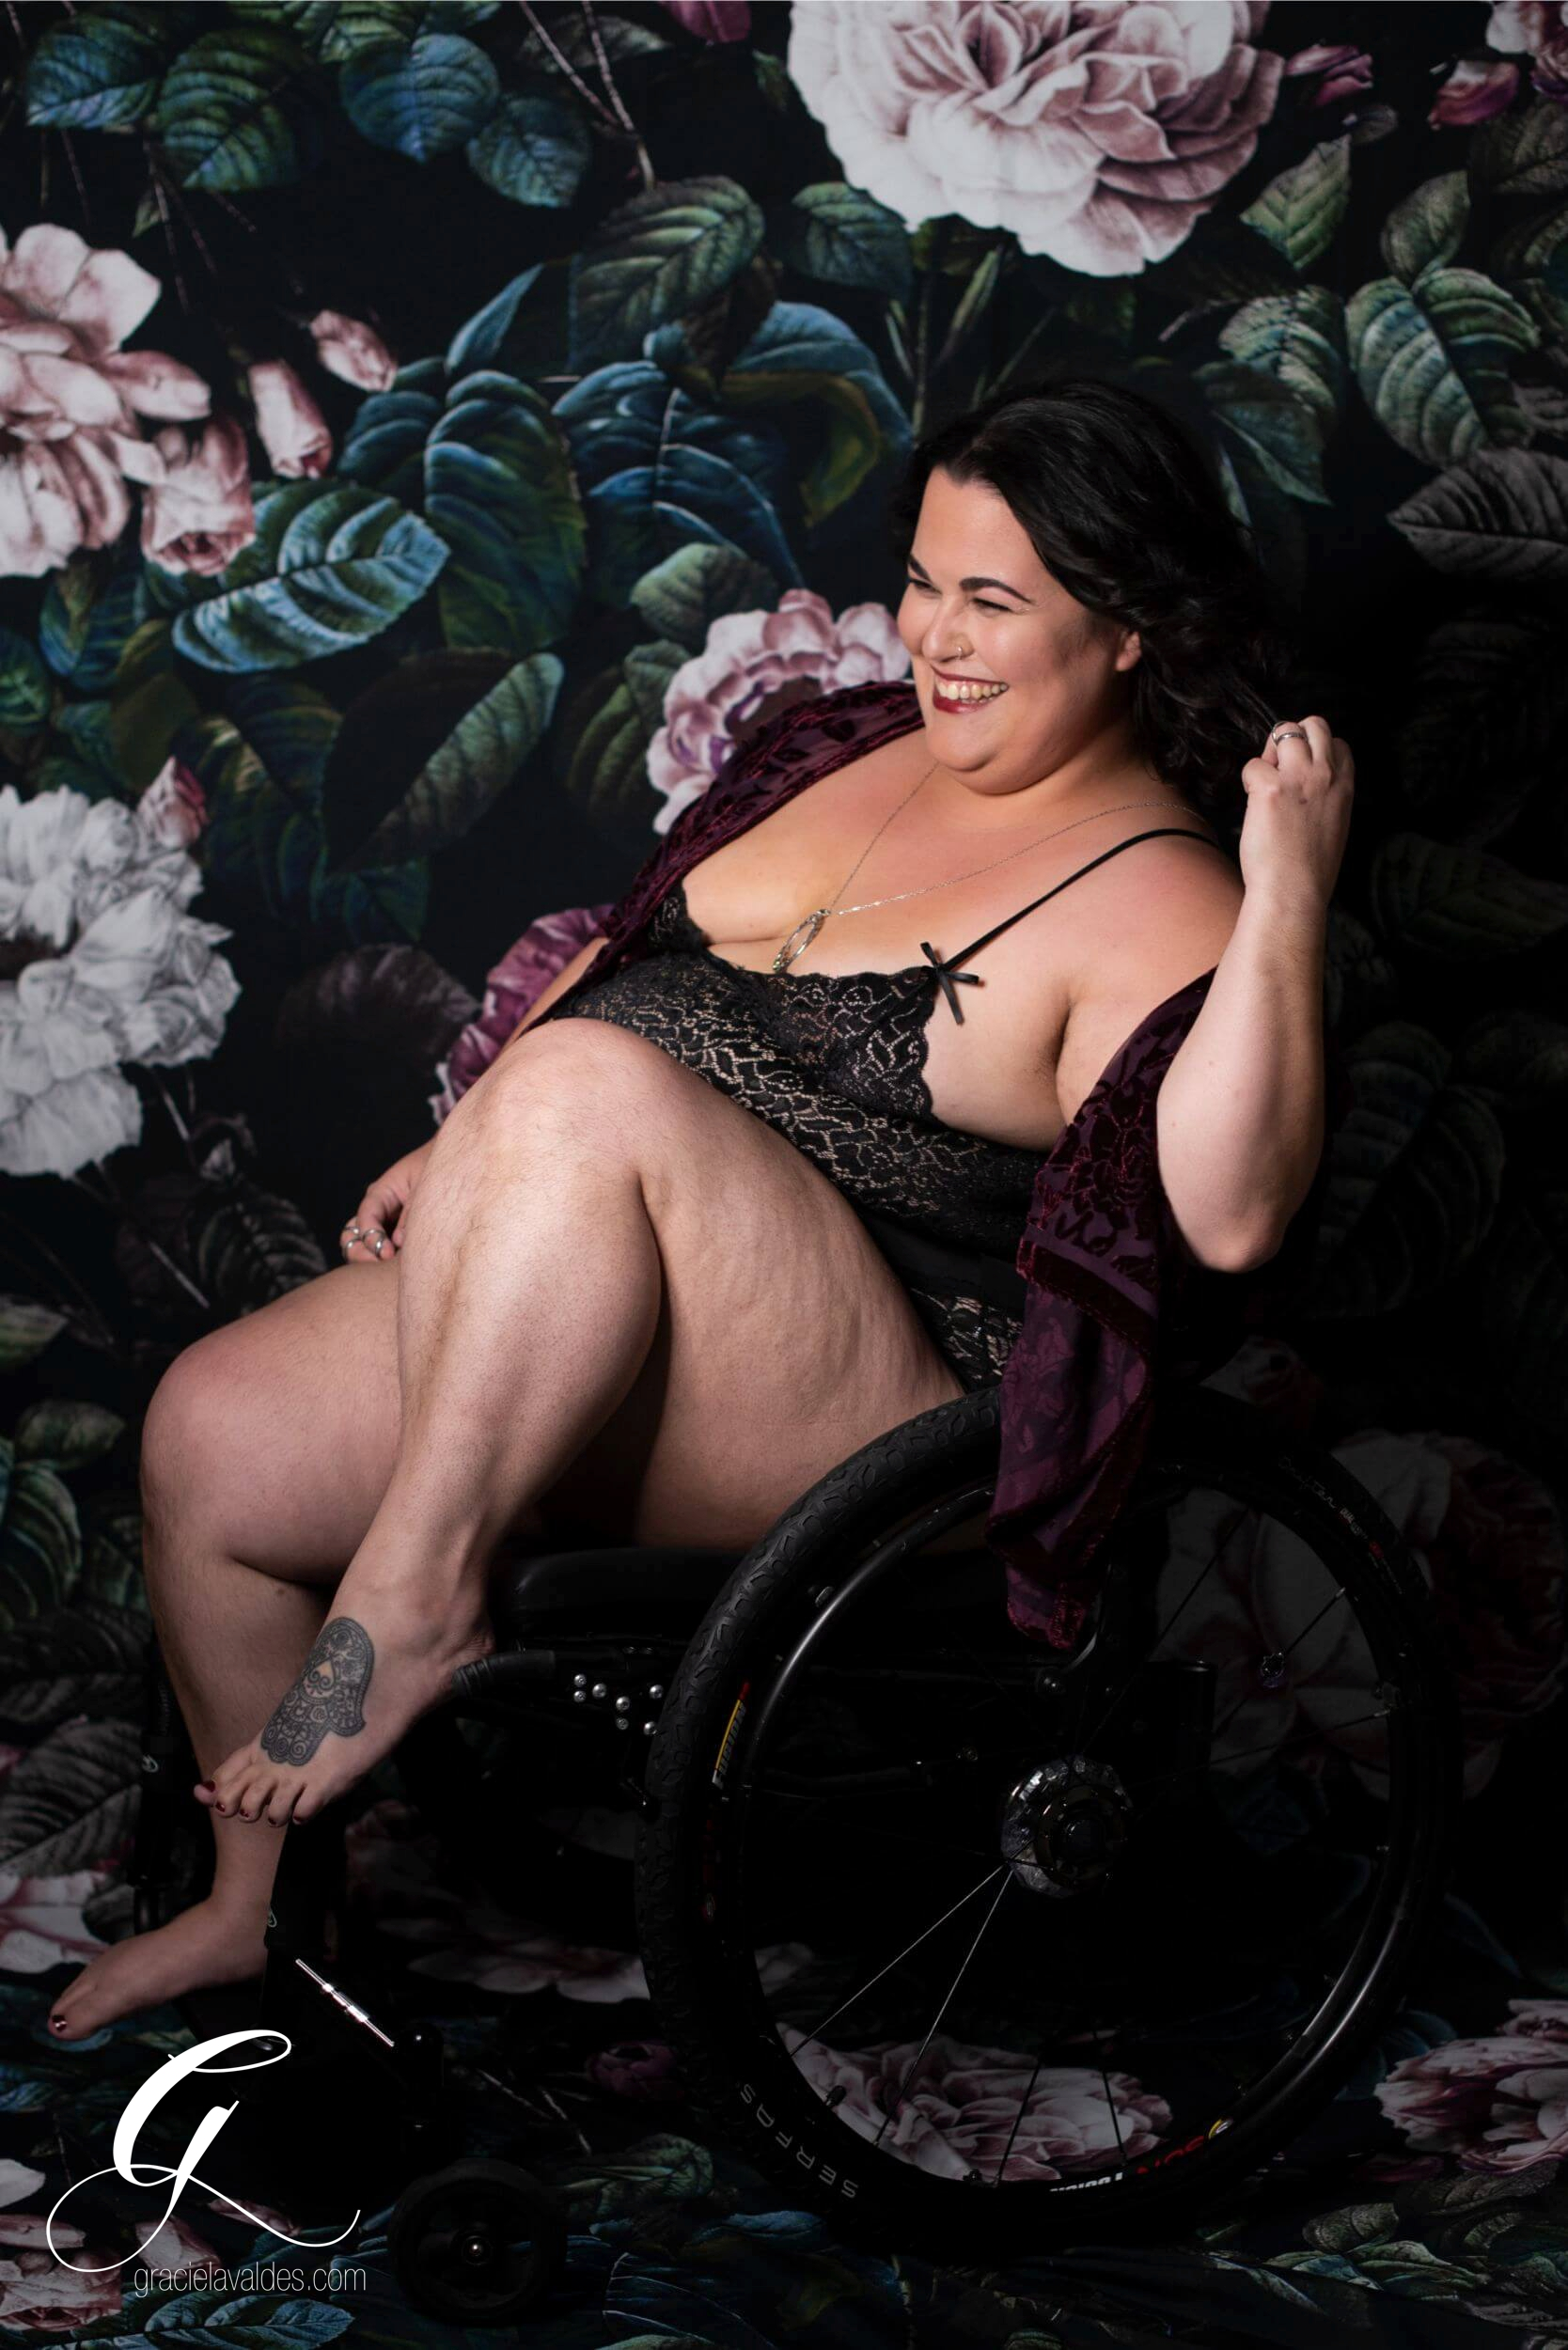 Genderqueer Boudoir Disabled Boudoir by Graciela Valdes 1.jpg